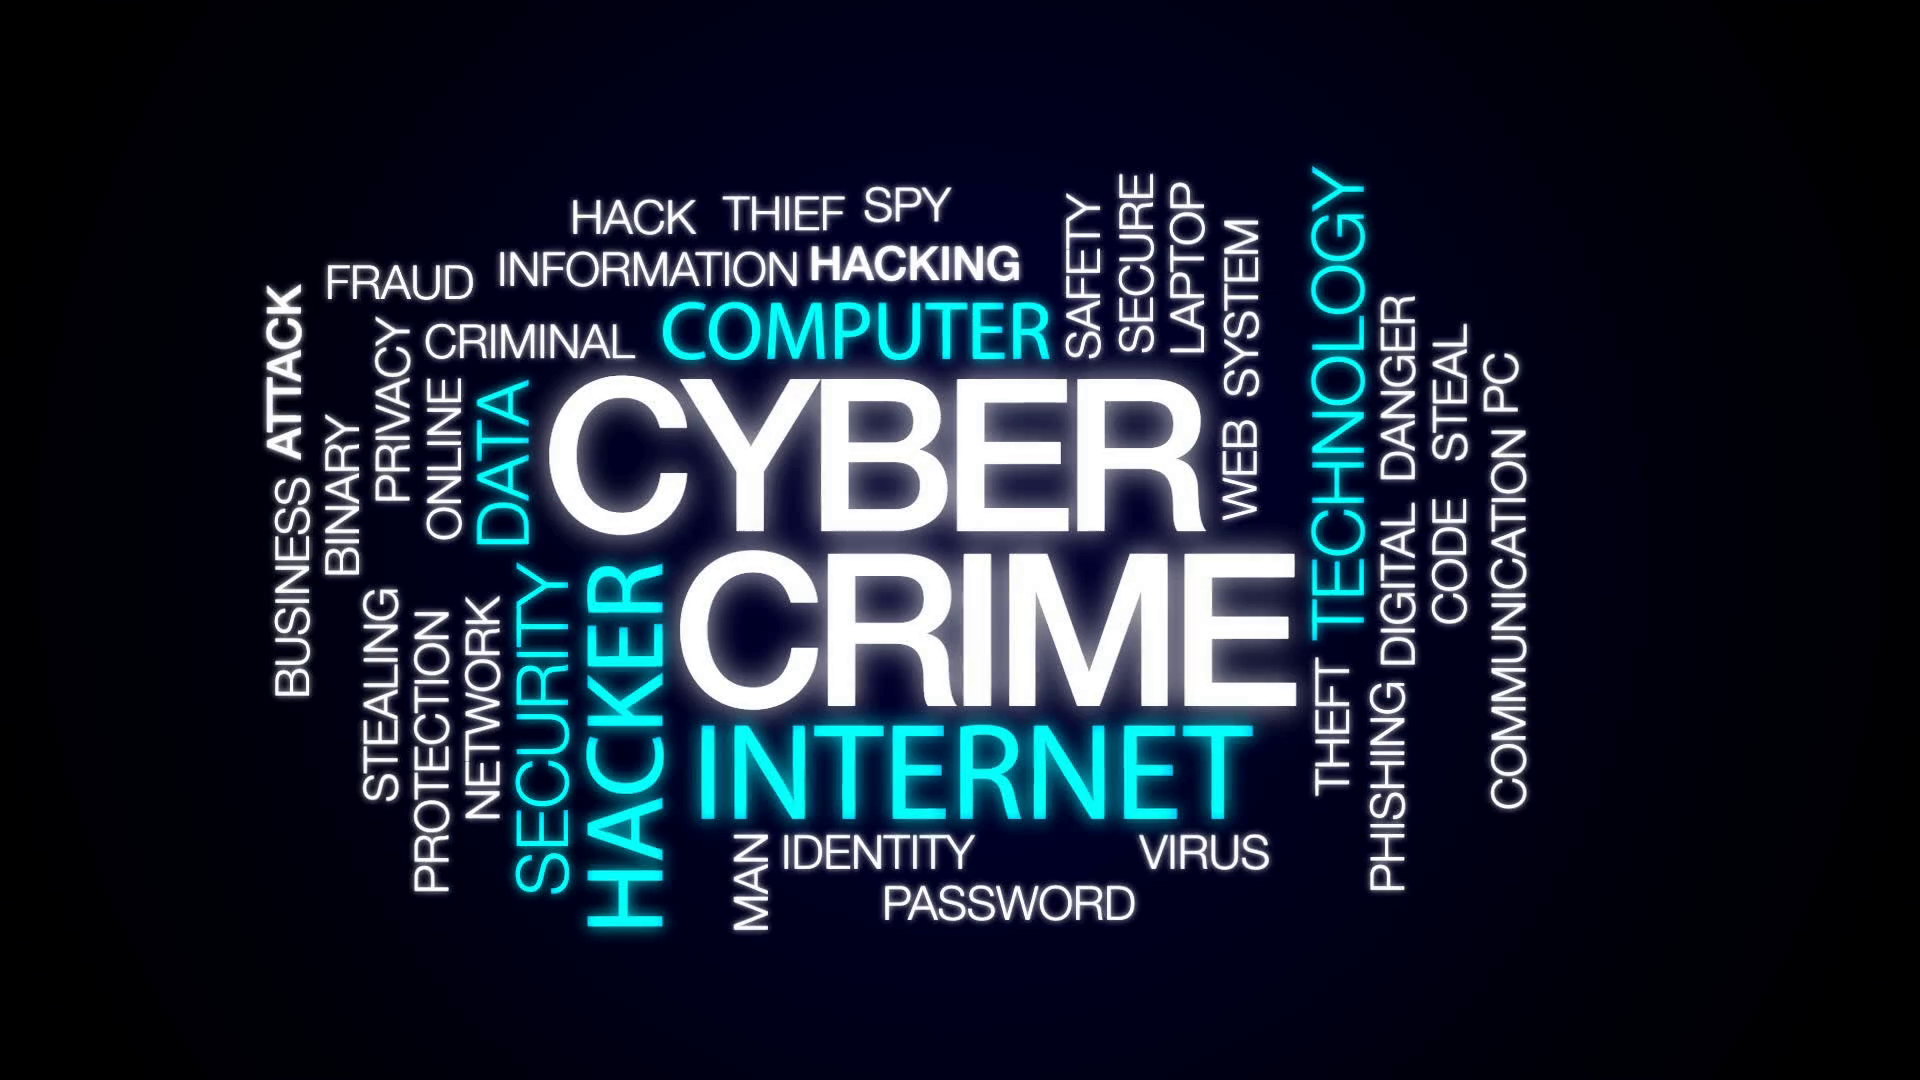 Cyber Crime Cyber Law Cyber Ethics Commandments piracy impostor hacking social media crime